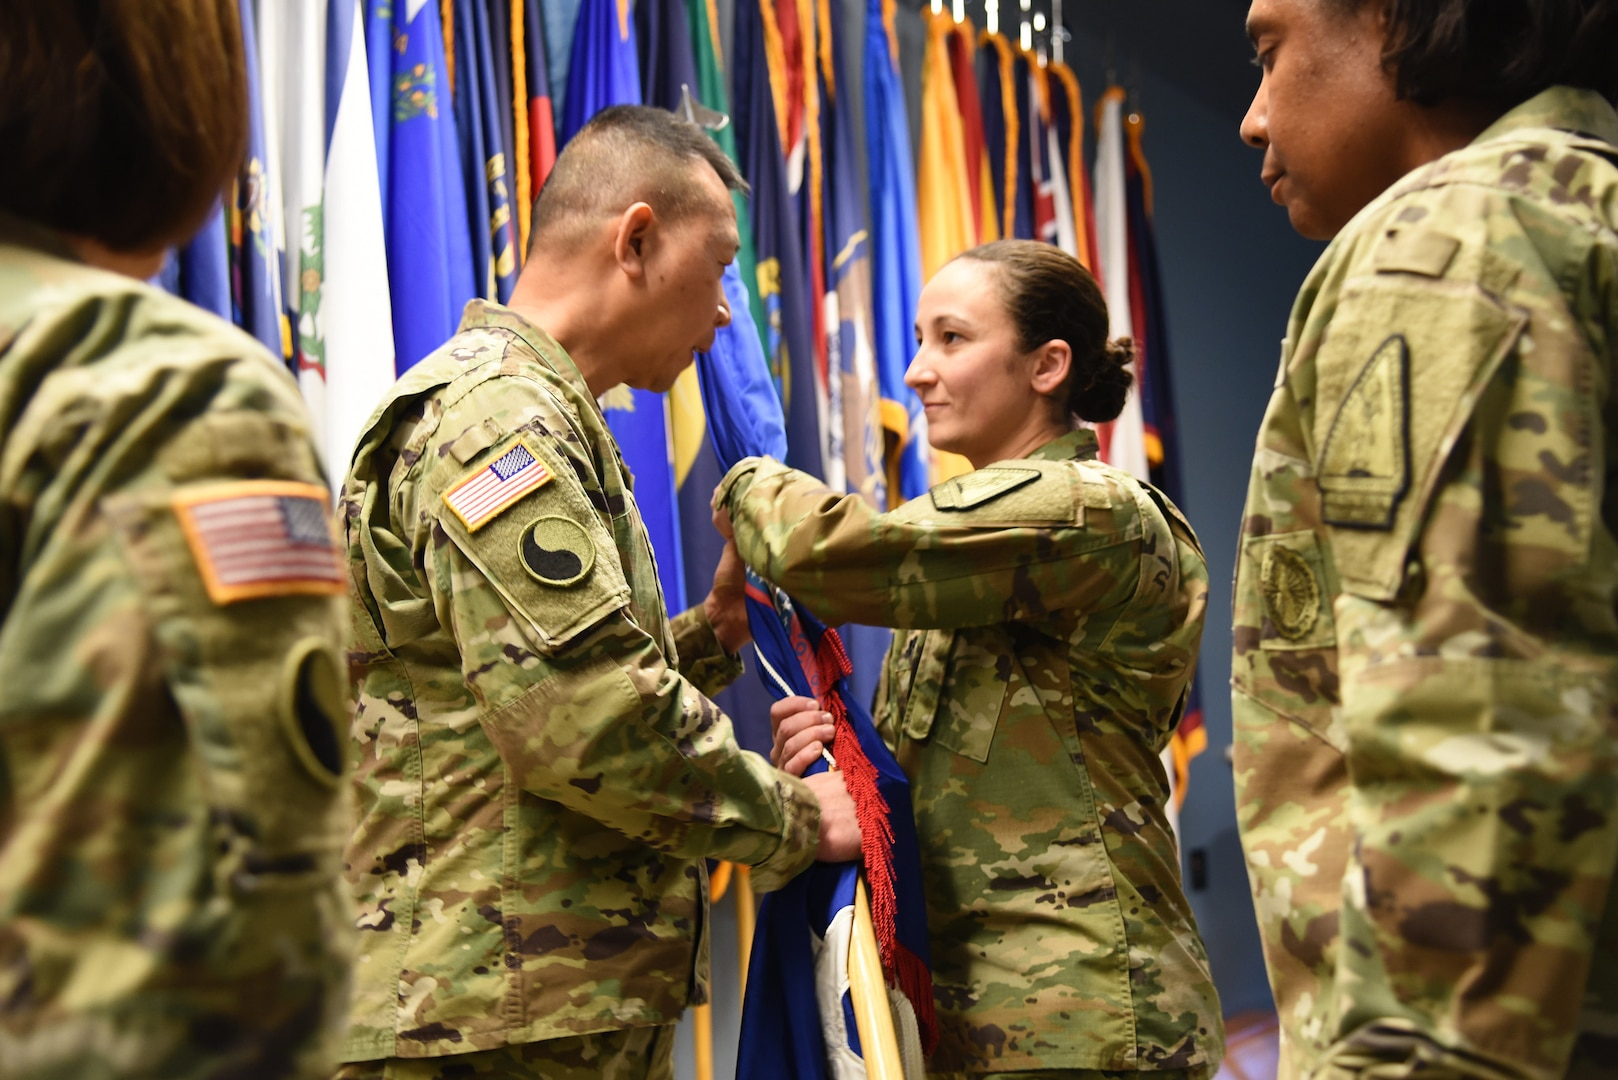 Lt. Col. Alyssa Astphan takes command of the Virginia National Guard's Recruiting and Retention Battalion from Lt. Col. Jennifer Martin in a change of command ceremony held Dec. 7, 2018, at Fort Pickett, Virginia. Brig. Gen. Lapthe Flora, Virginia National Guard Assistant Adjutant General - Army, presided over the exchange of the guidon that represented the transfer of command from Martin to Astphan. (U.S. Army National Guard photo by Sgt. 1st Class Terra C. Gatti)